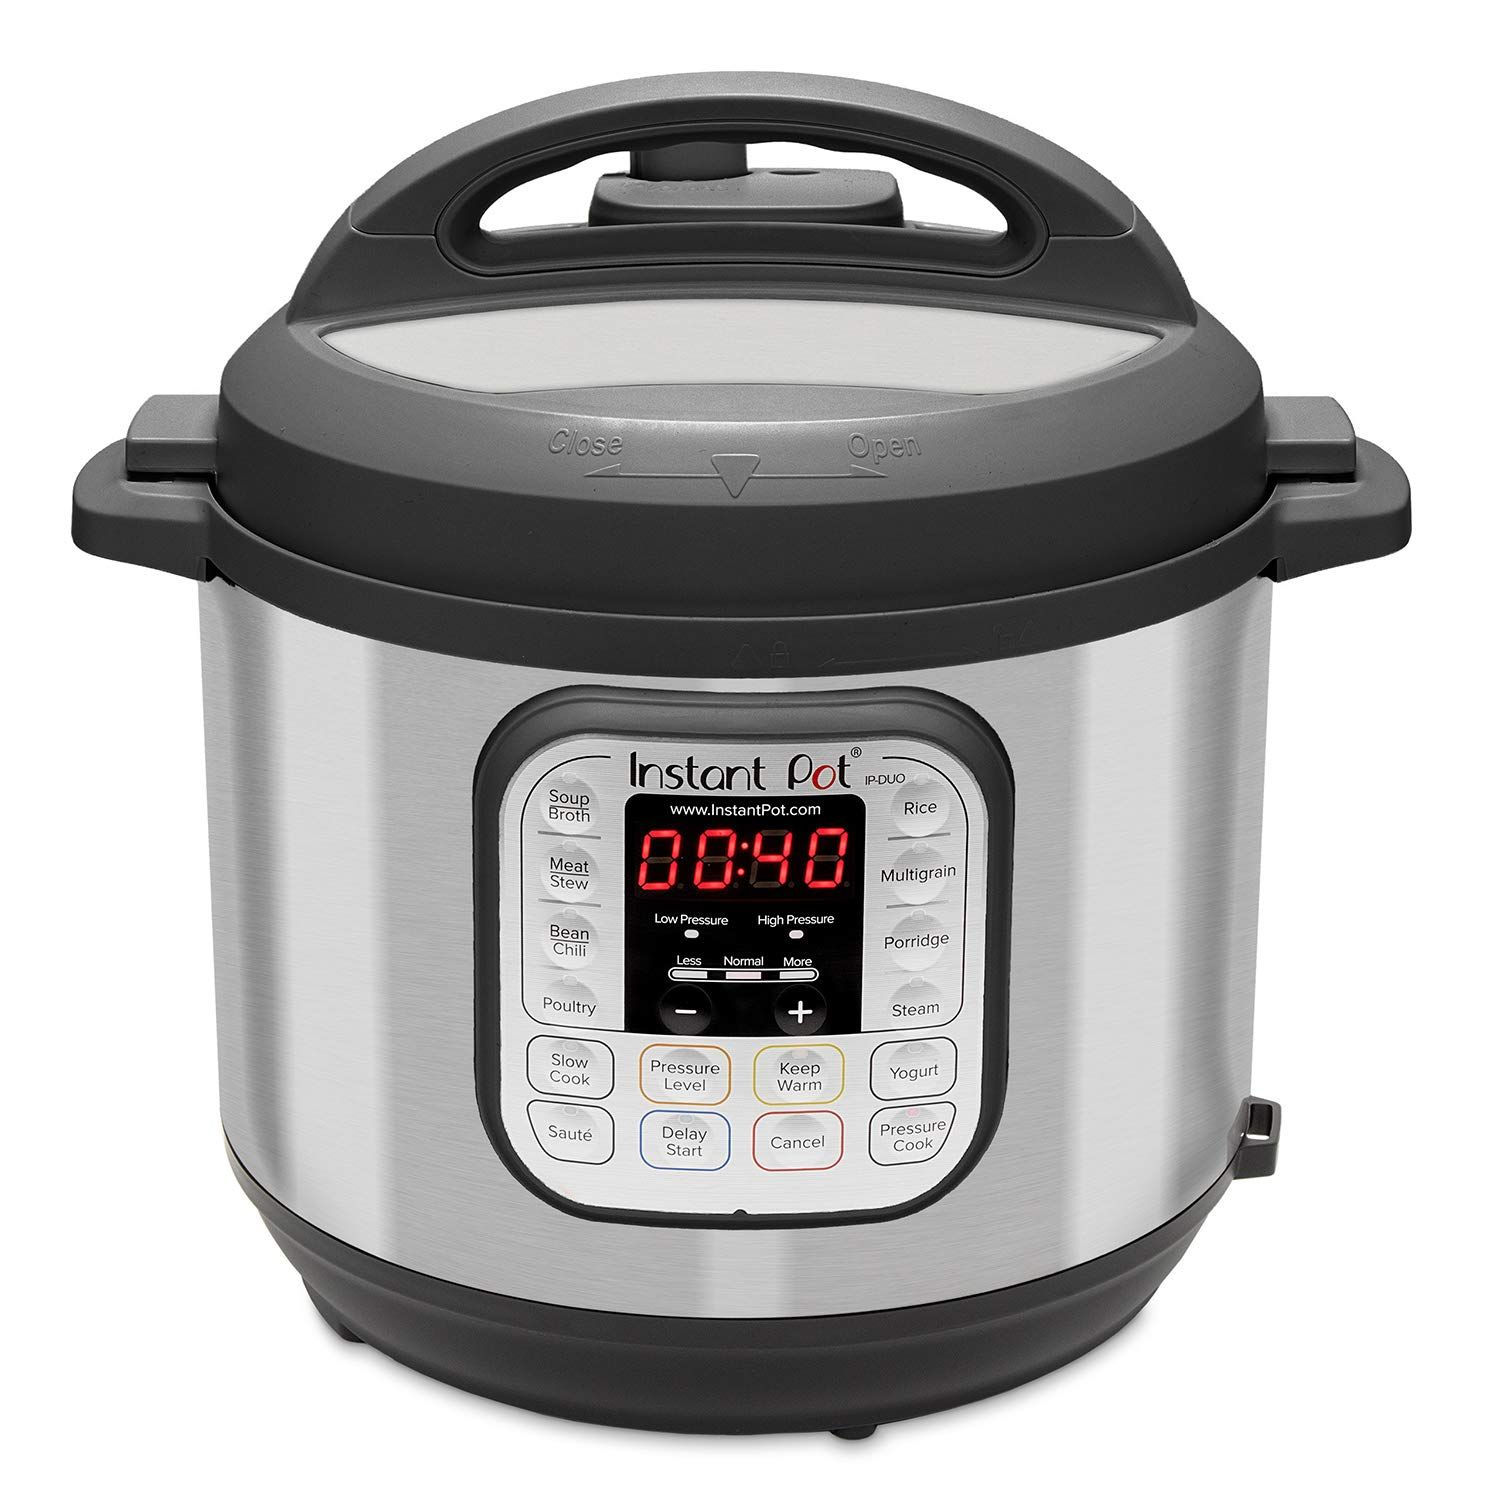 Instant pot duo60 6 qt 7in1 multiuse programmable